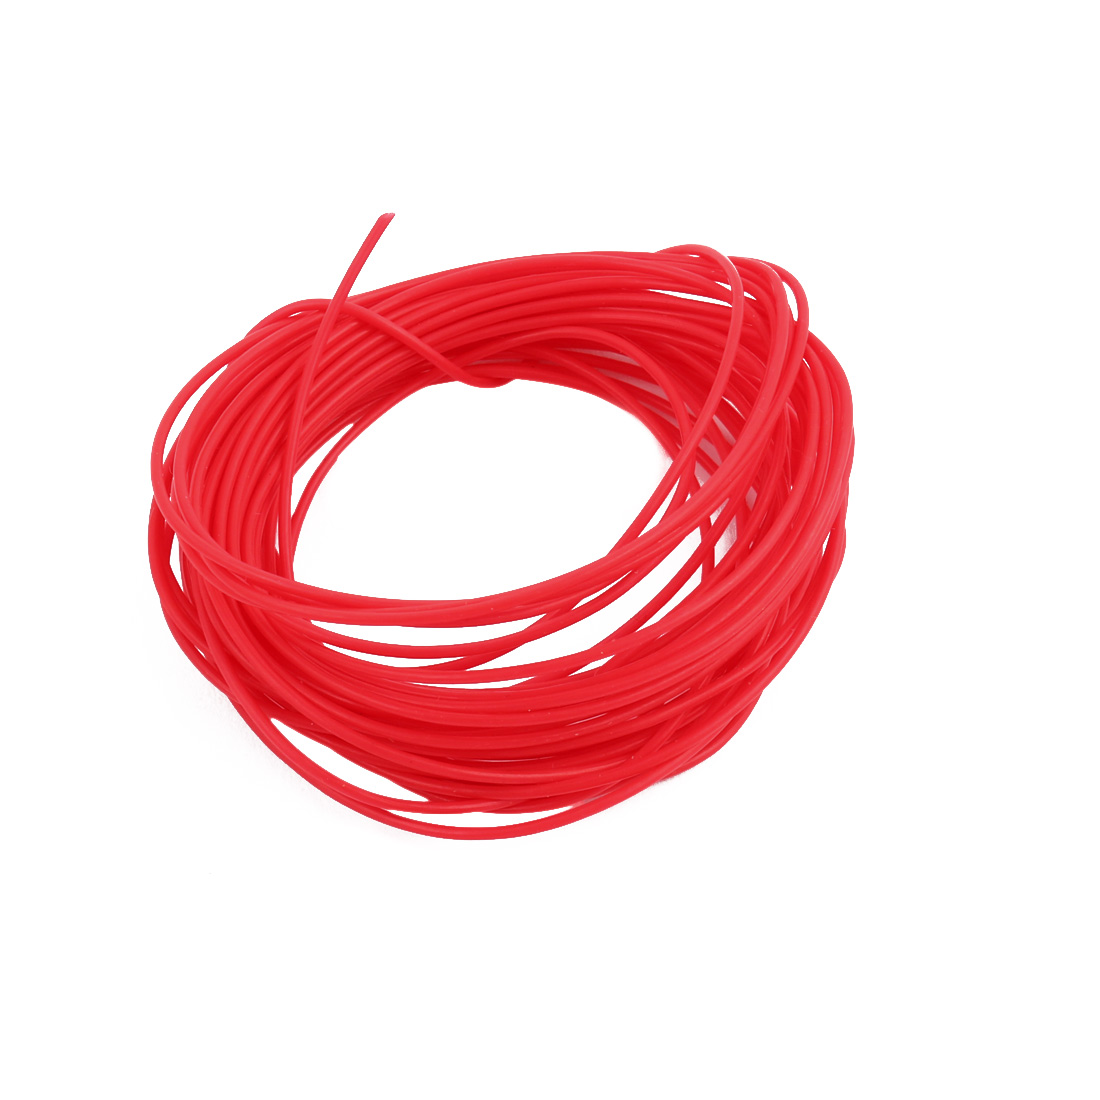 0.66mmx0.96mm PTFE Resistant High Temperature Red Tubing 10 Meters 32.8Ft